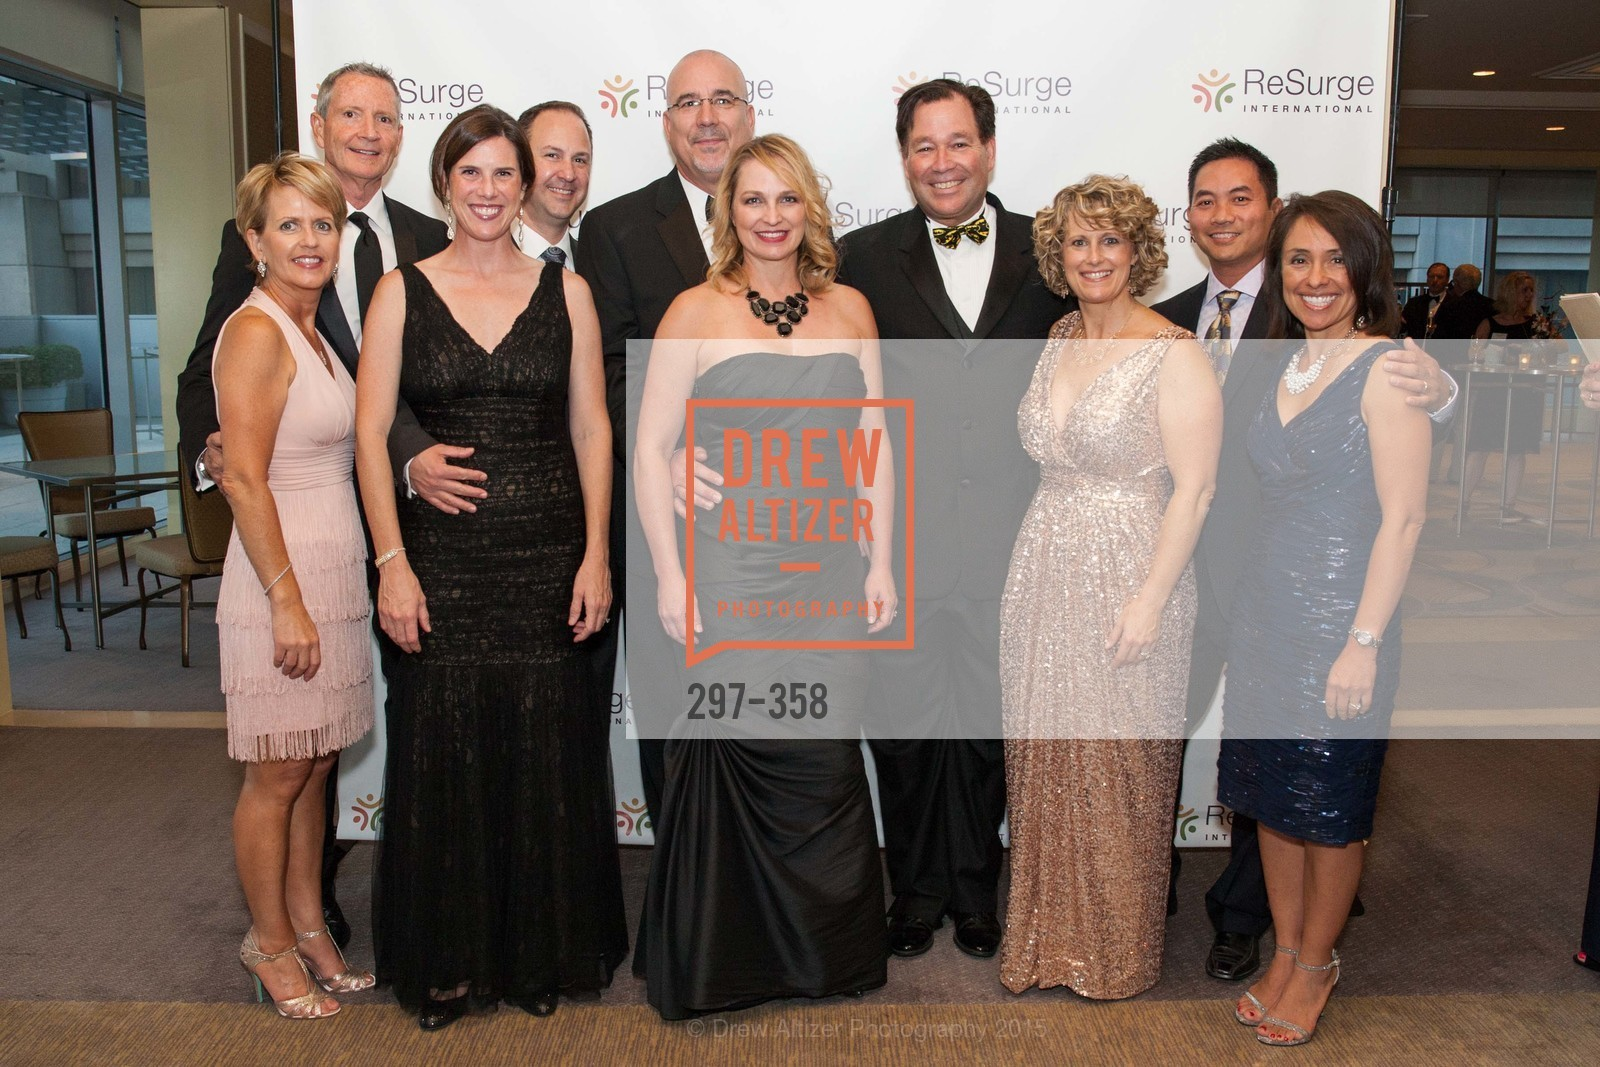 Chris Canter, Pamela Canter, Marcella Dew, Joe Dew, ReSurge International Gala, Four Seasons San Francisco, October 10th, 2015,Drew Altizer, Drew Altizer Photography, full-service agency, private events, San Francisco photographer, photographer california